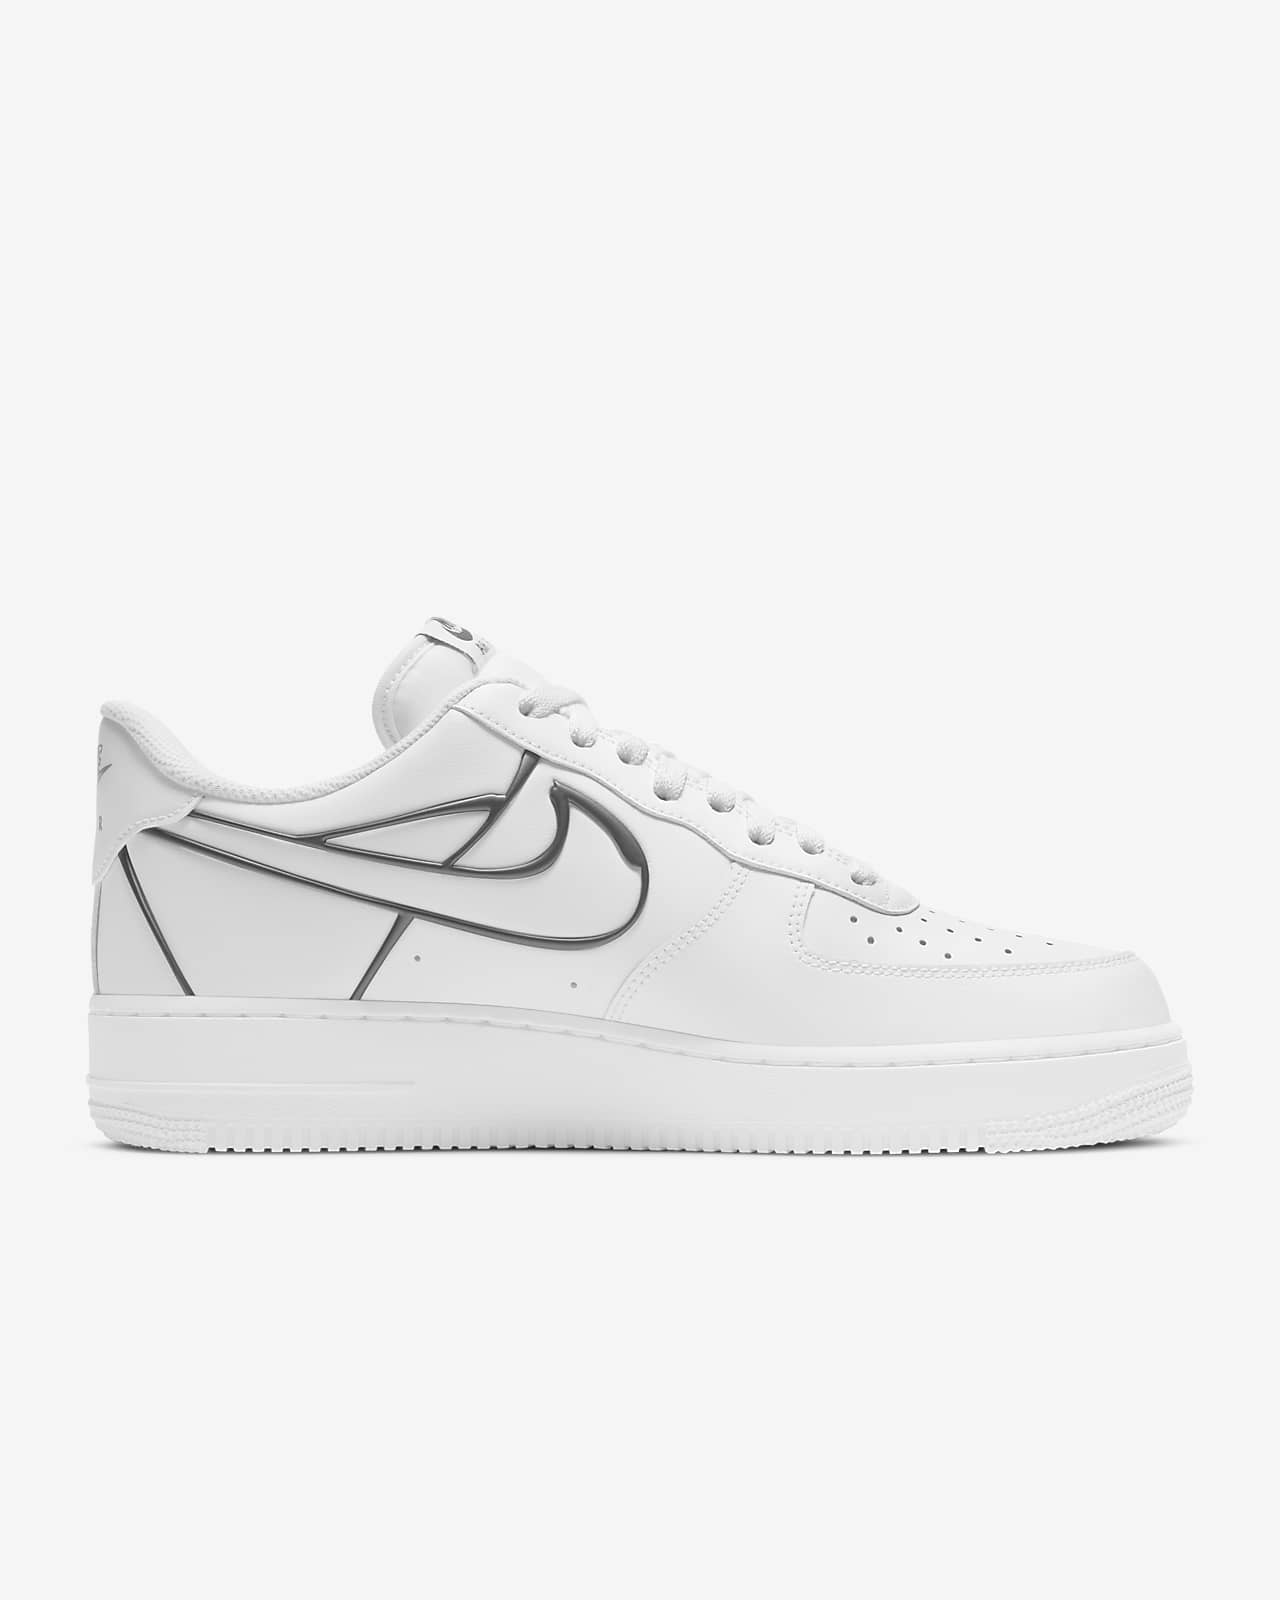 Chaussure Nike Air Force 1 pour Homme